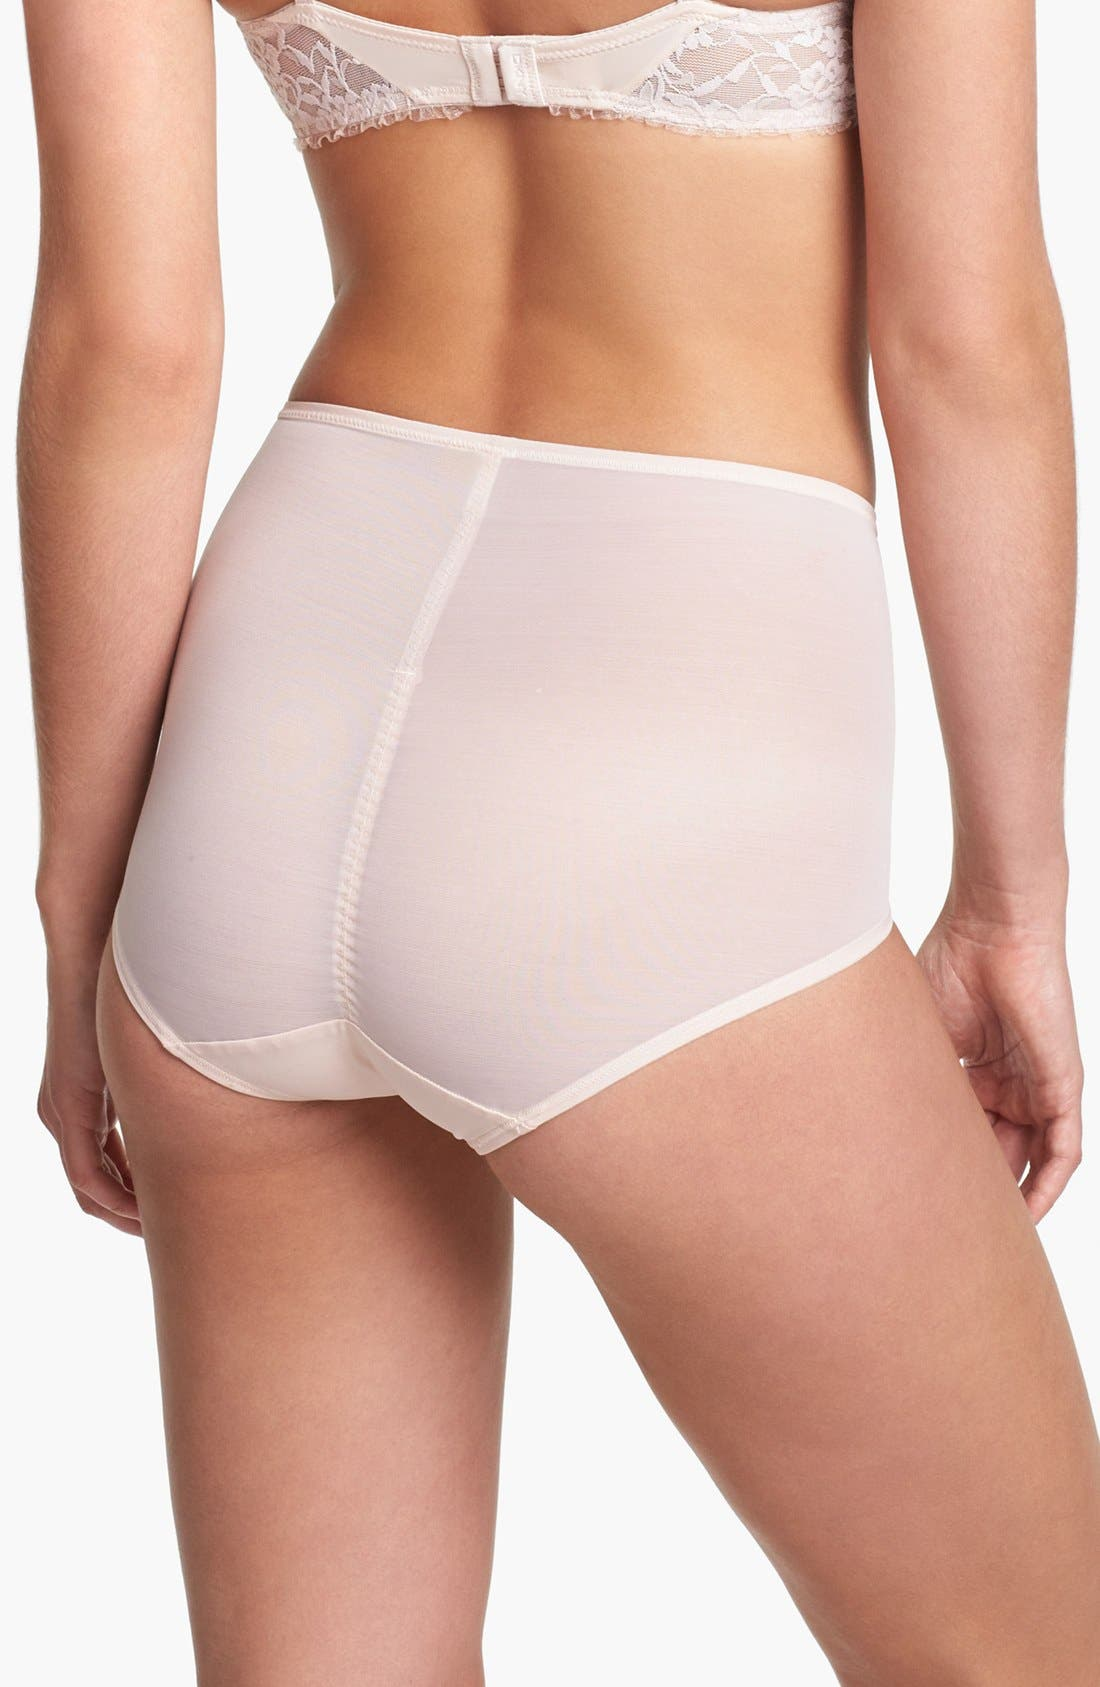 Alternate Image 2  - DKNY 'Underslimmers Signature Lace' Shaping Briefs (Online Only)